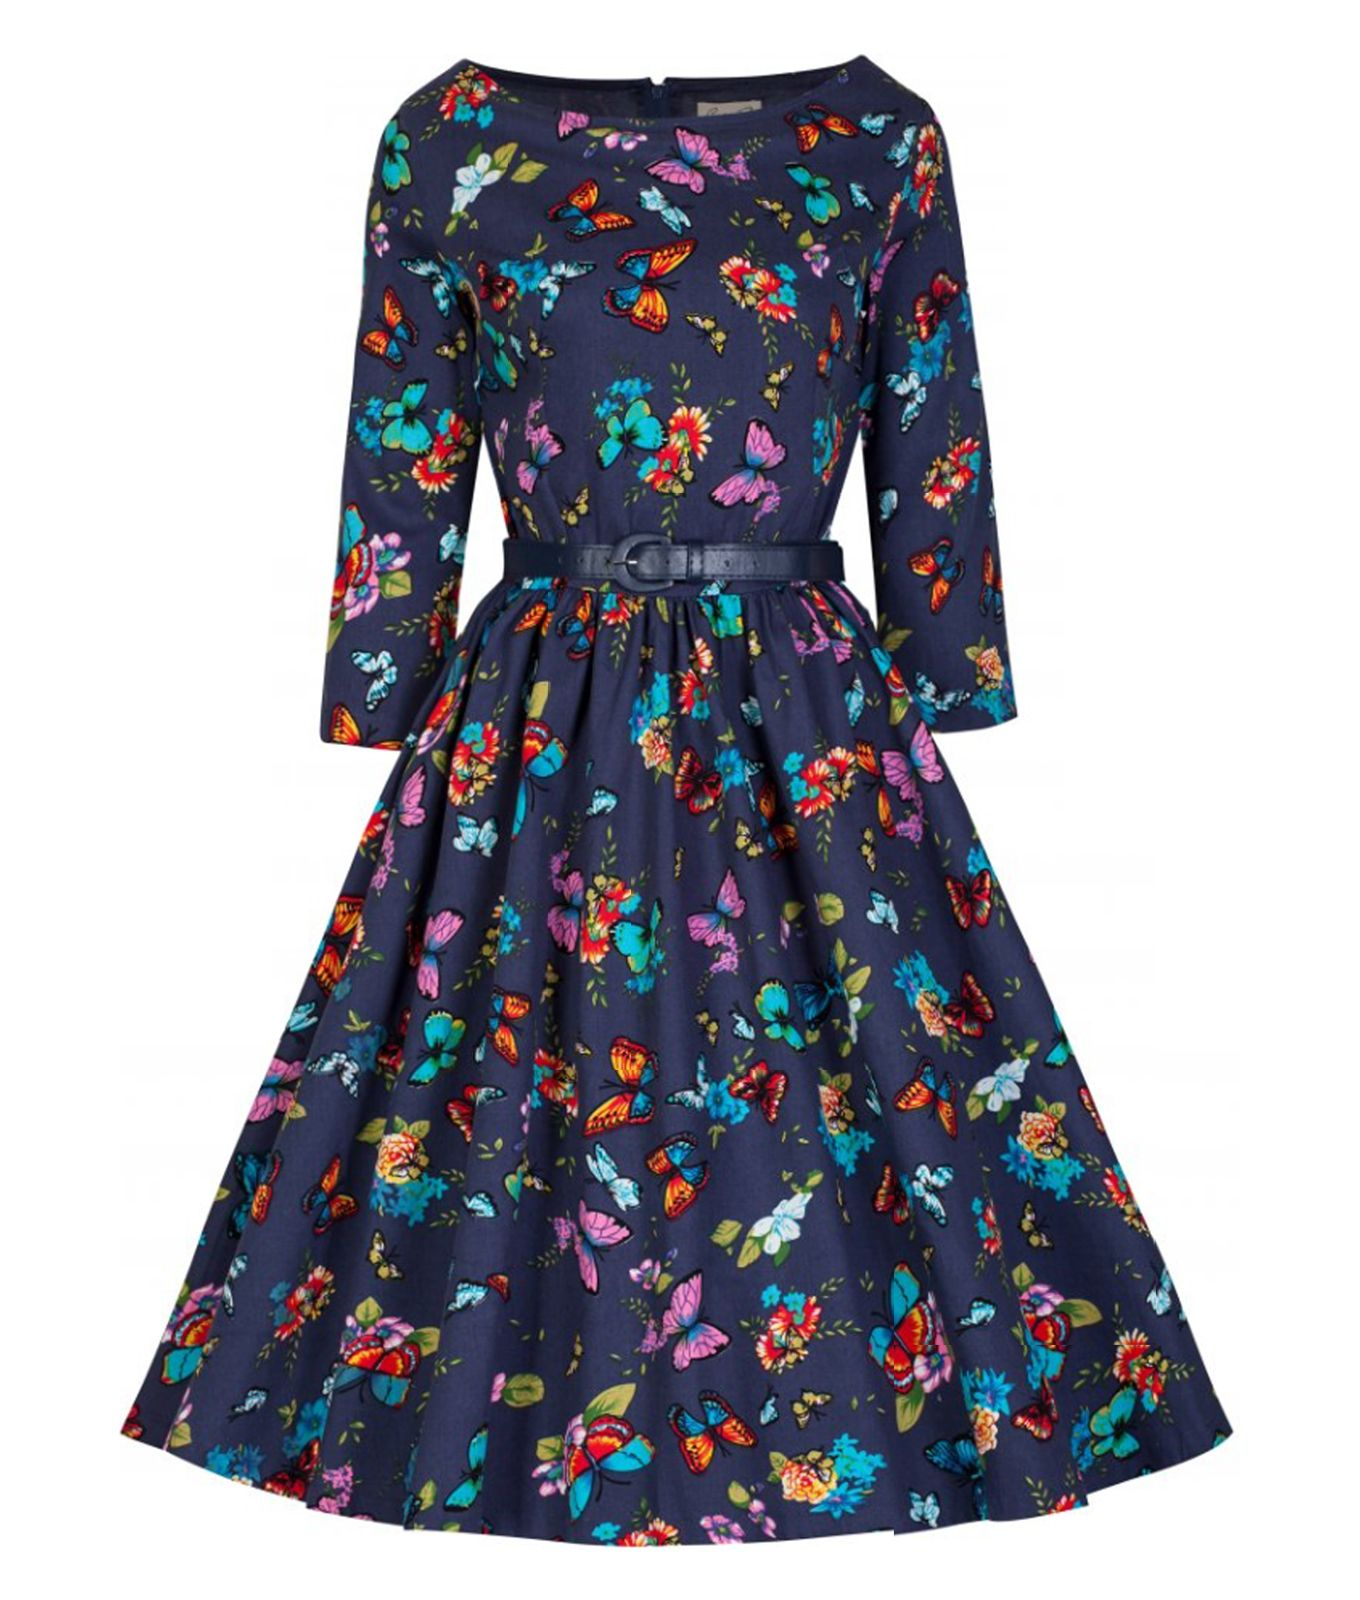 2c4b69f23772 Beautiful 50's vintage style dress made from heavy stretch cotton fabric  with pretty butterfly & floral fabric design. Flattering 3/4 length sleeves.